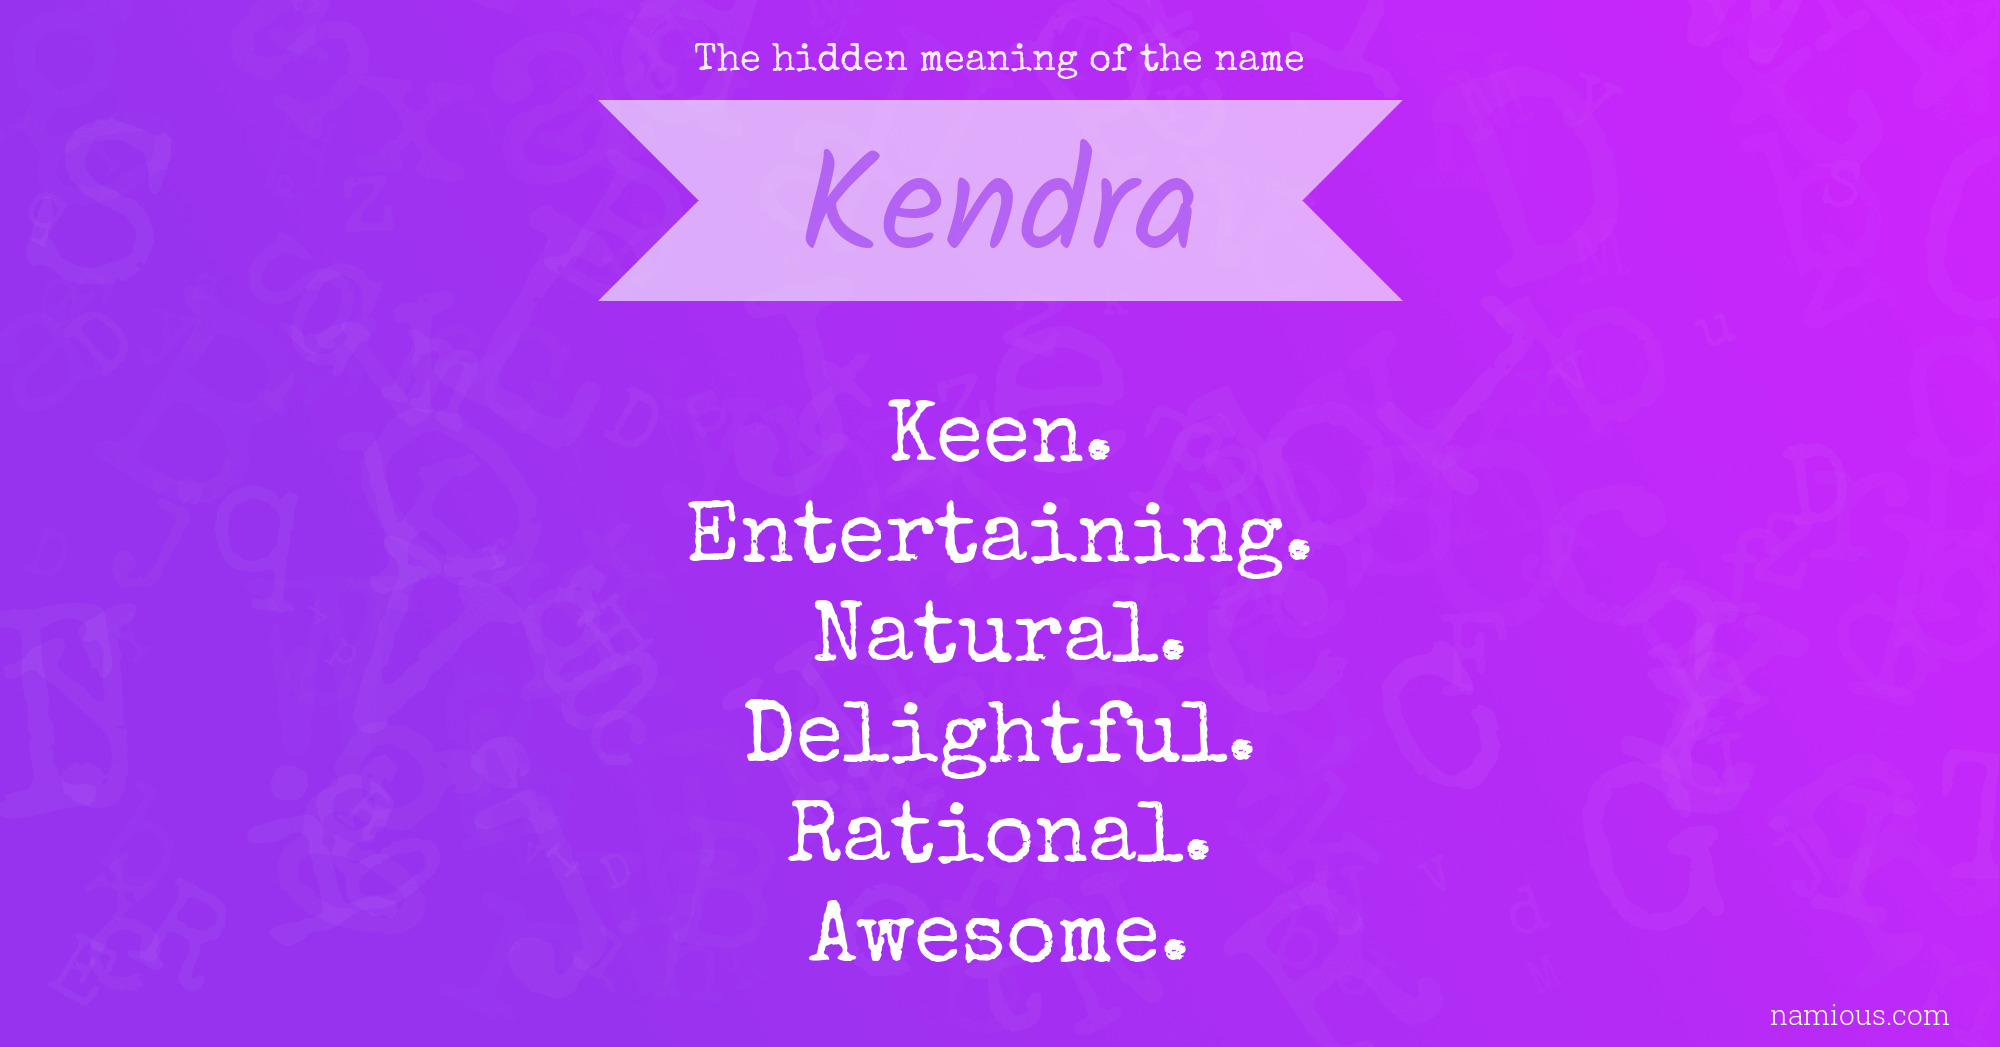 The hidden meaning of the name Kendra | Namious